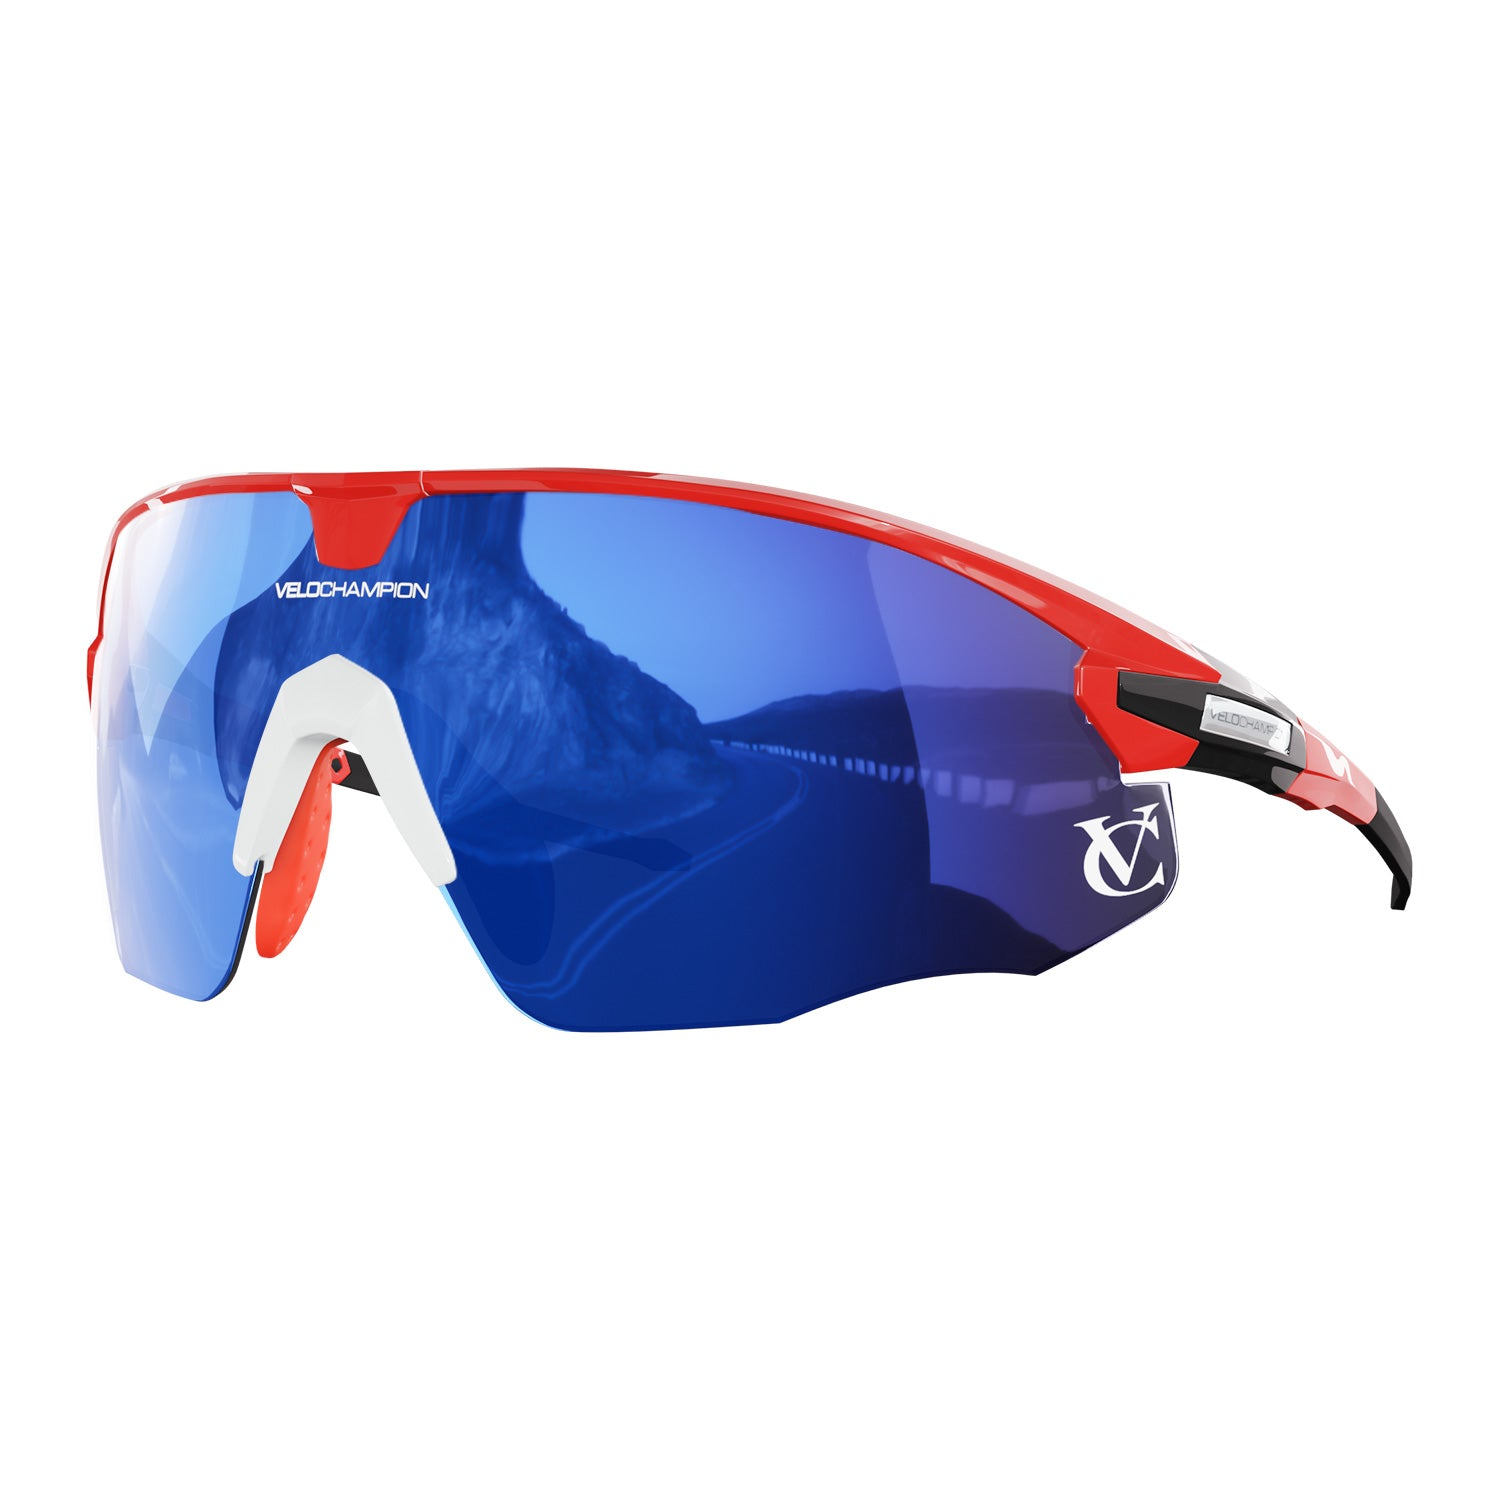 VeloChampion-Tour-Of-Britain-Missile-Sunglasses